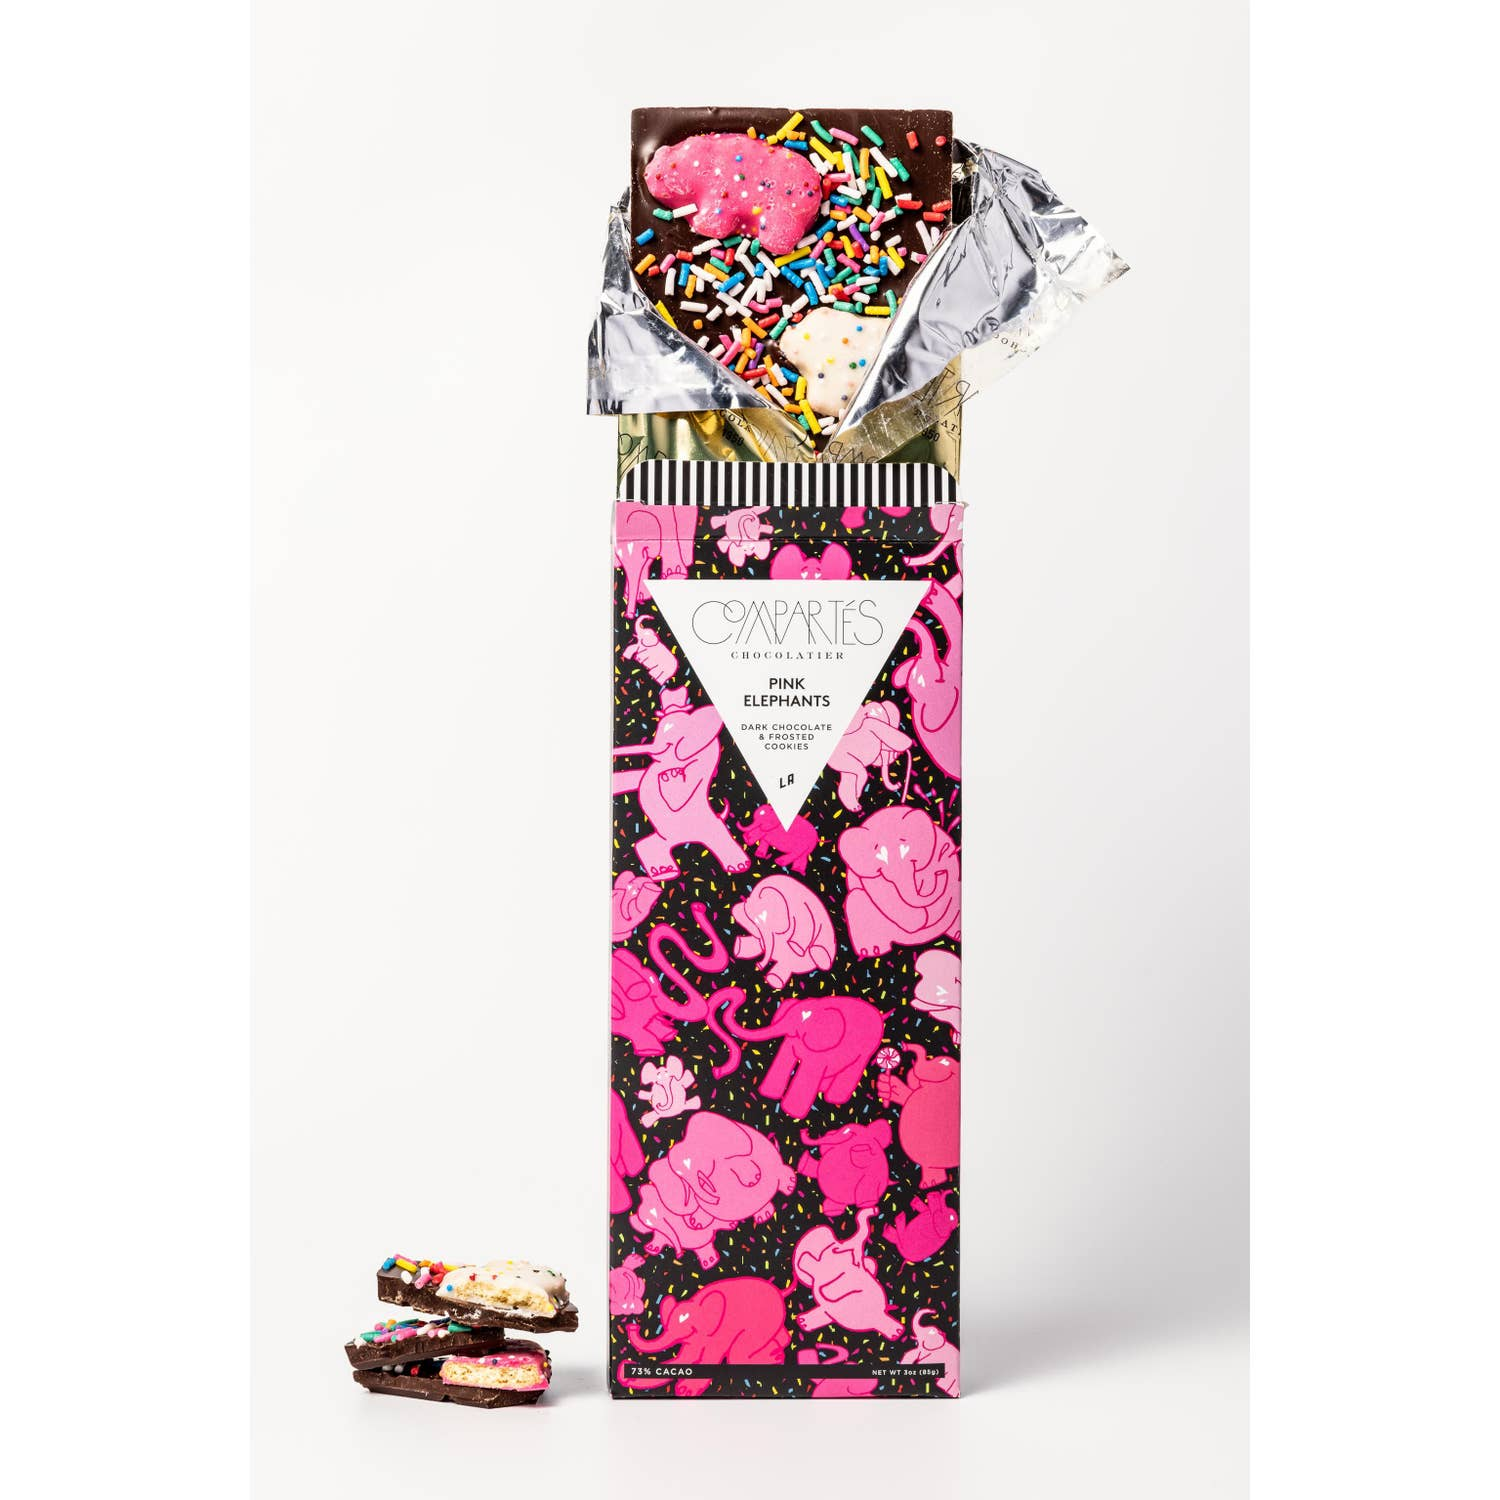 Compartes Animal Cookies Dark Chocolate Bar - Giften Market